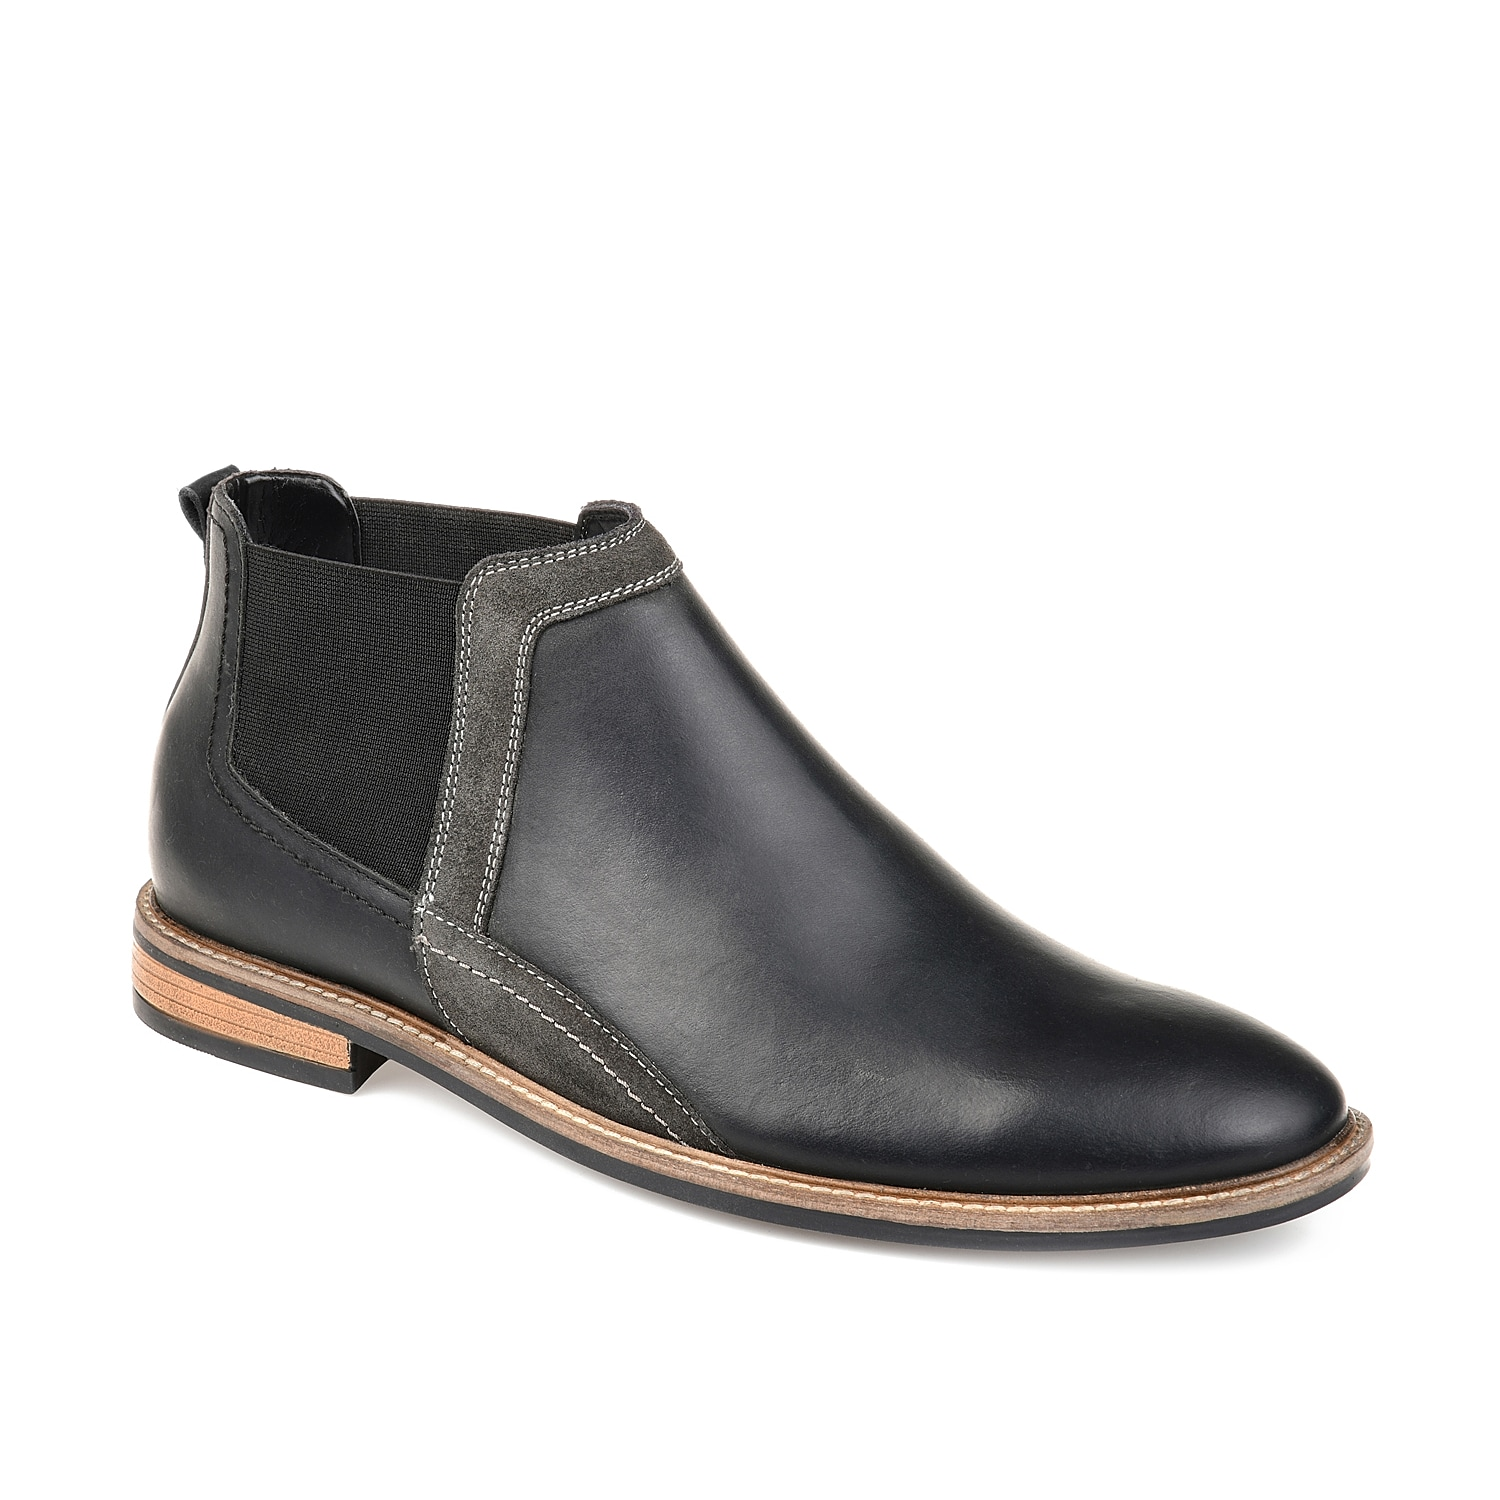 Refresh your shoe collection with the Beckham boot from Thomas & Vine. This leather pair features Chelsea-inspired styling and will complete your dapper wardrobe.